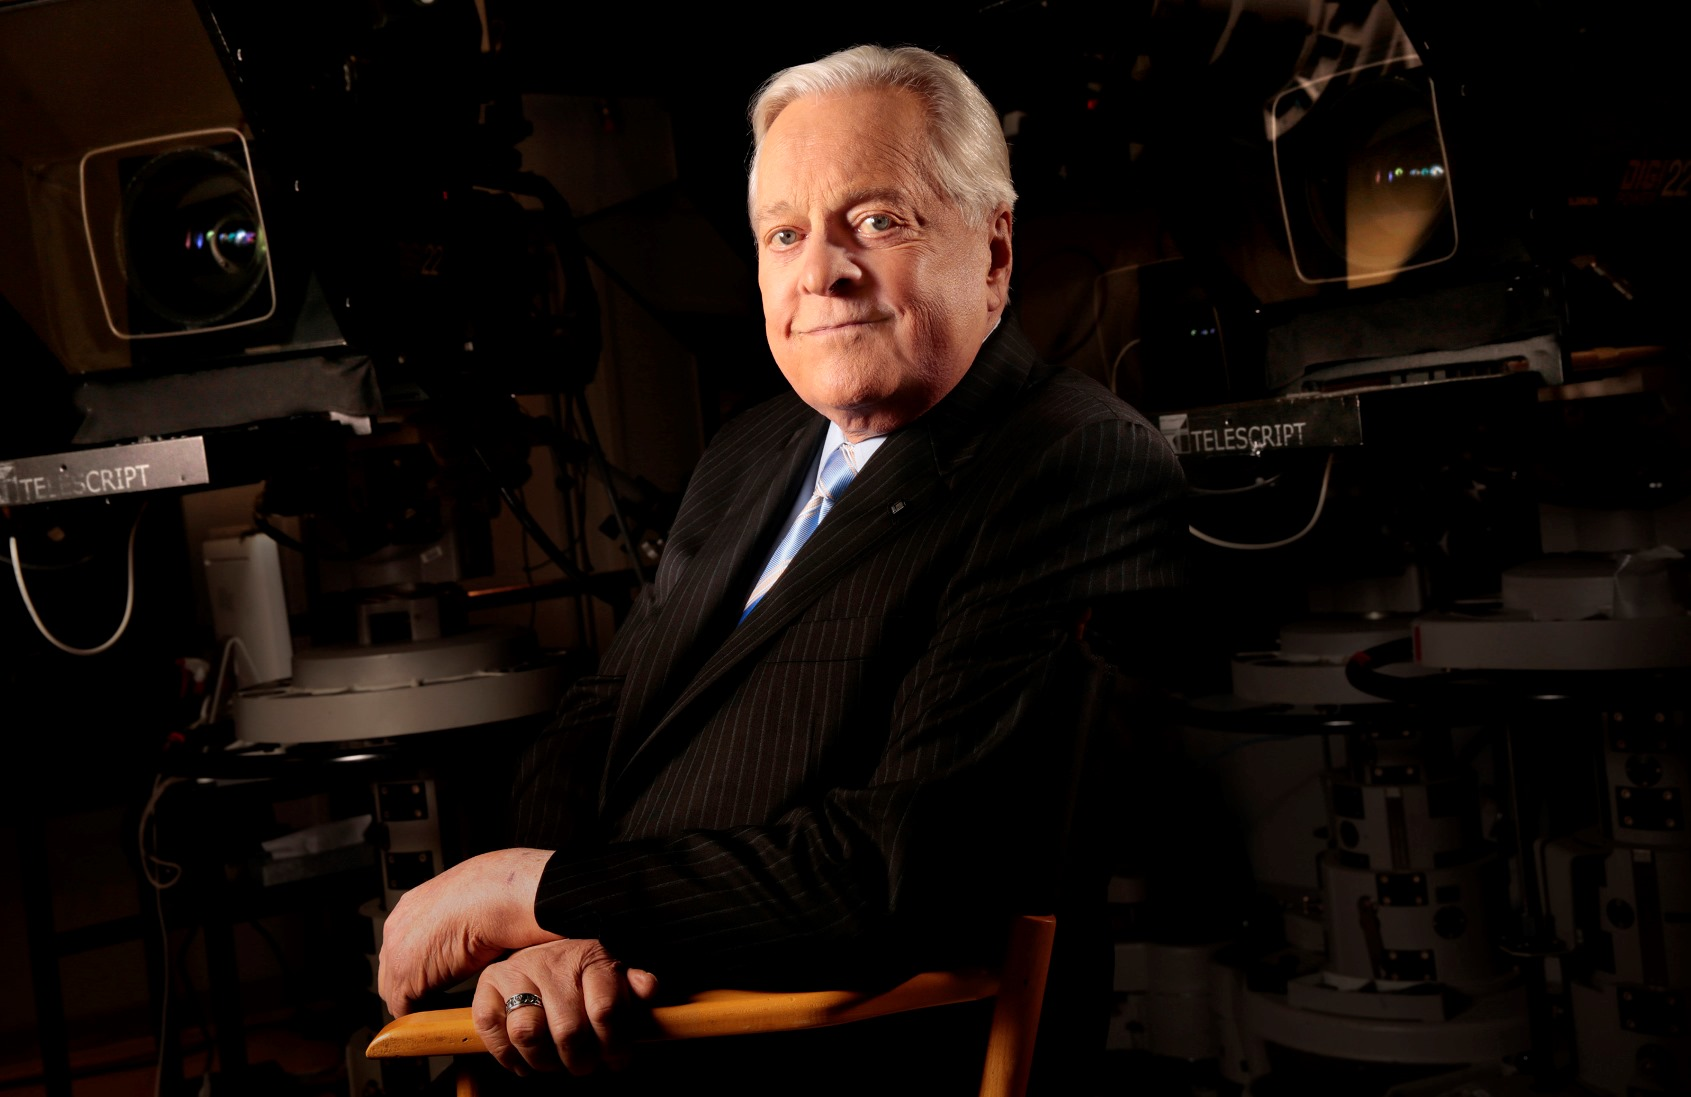 Robert Osborne, host of Turner Classic Movies and the author of the official history of the Oscars, poses for a portrait on Oct. 30, 2013 in New York, N.Y. Osborn died in New York at age 84. (Carolyn Cole/Los Angeles Times/TNS)